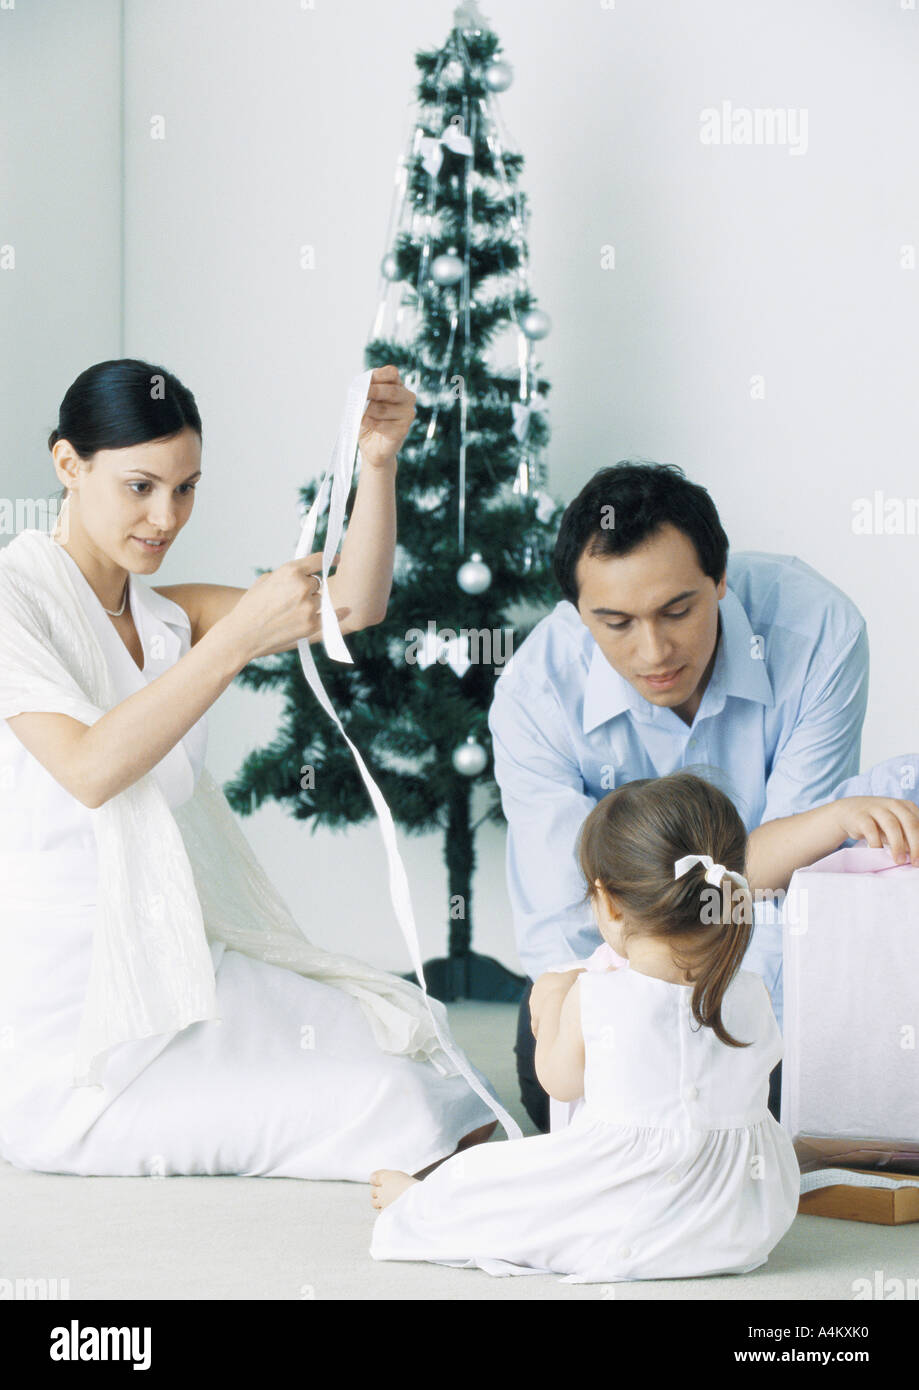 Little girl sitting on floor with parents near Christmas tree Stock Photo